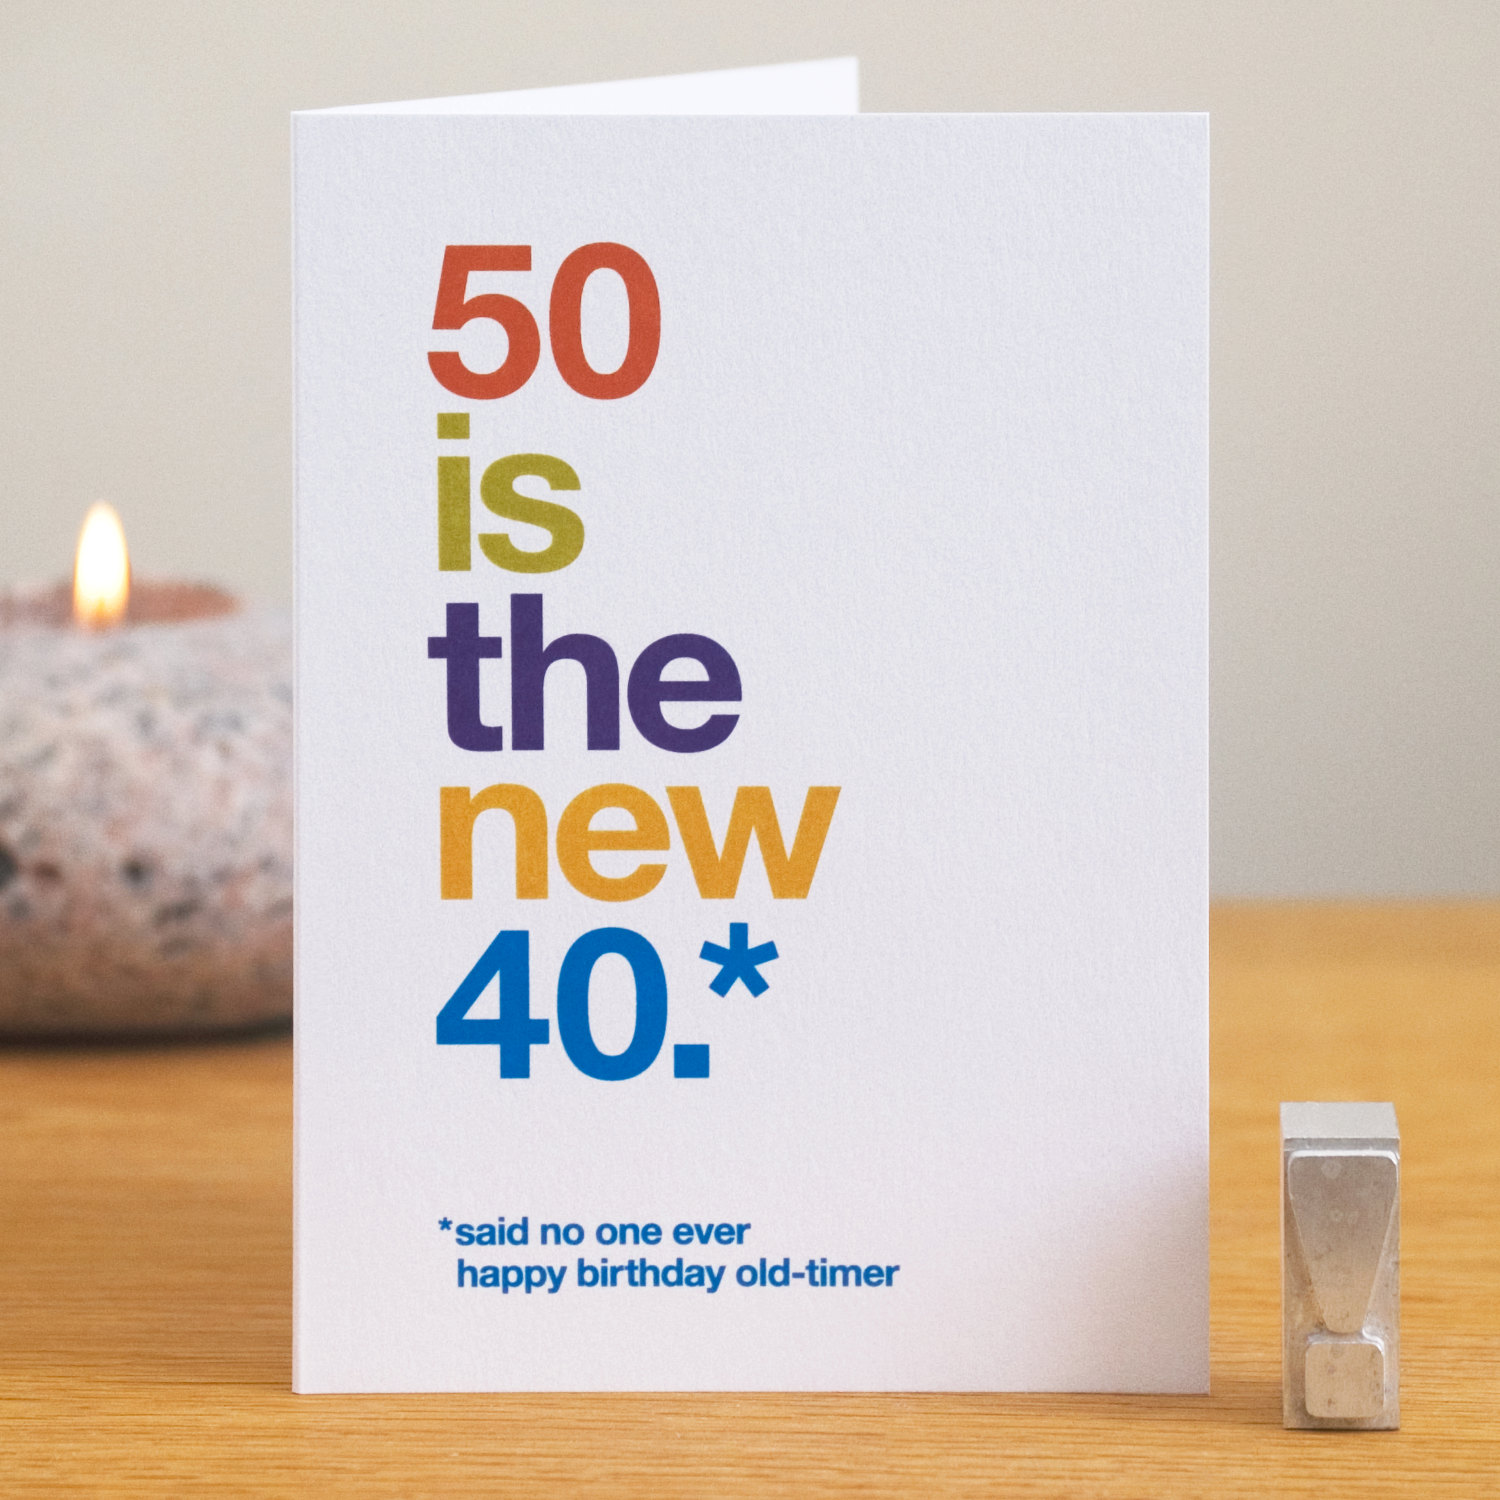 50th birthday greeting card messages ; 50Th-Birthday-Card-Messages-for-a-fair-birthday-Card-design-with-fair-layout-1